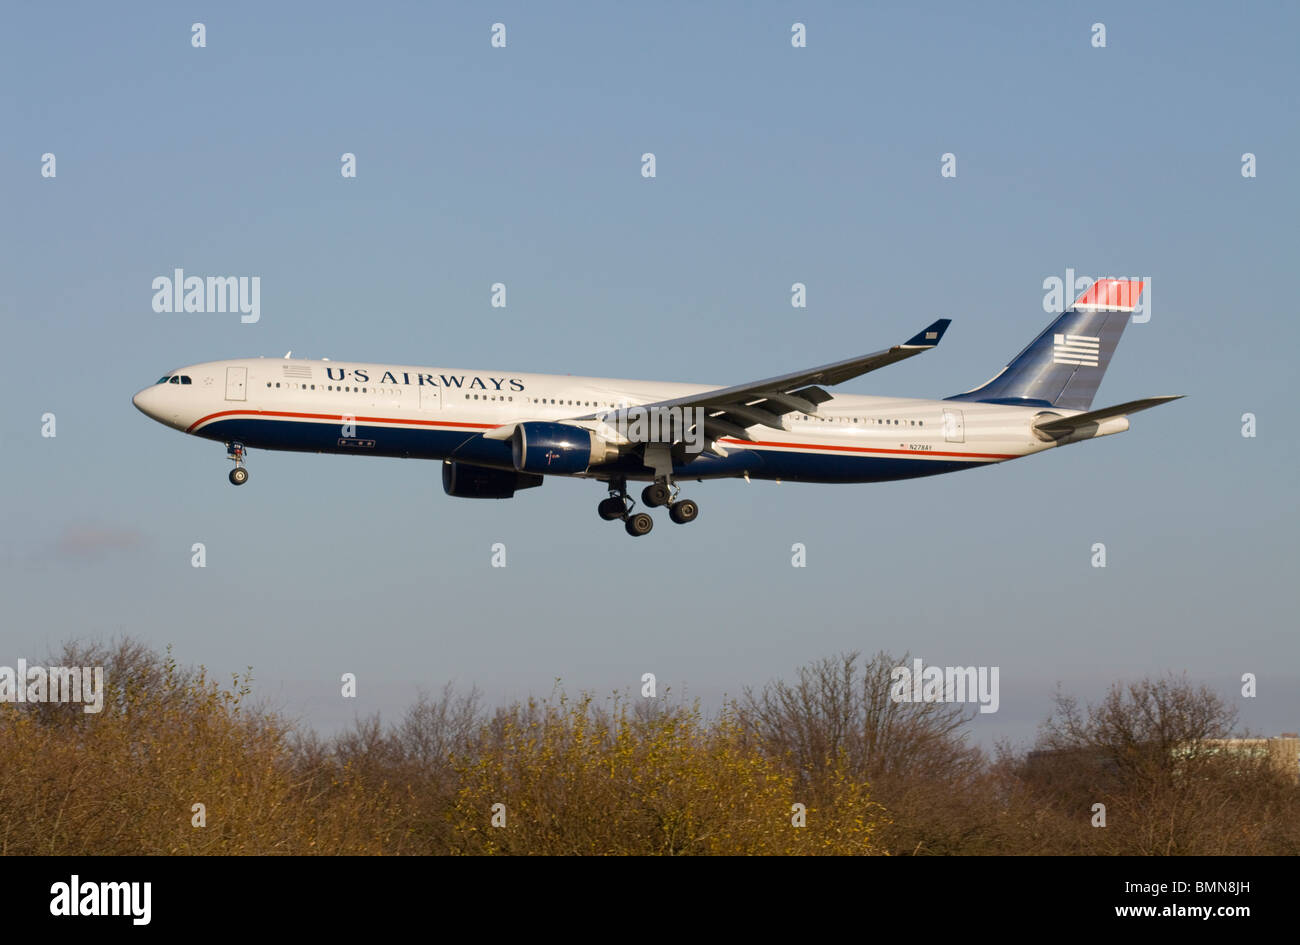 US Airways Airbus A330-323X landing at London Heathrow - Stock Image